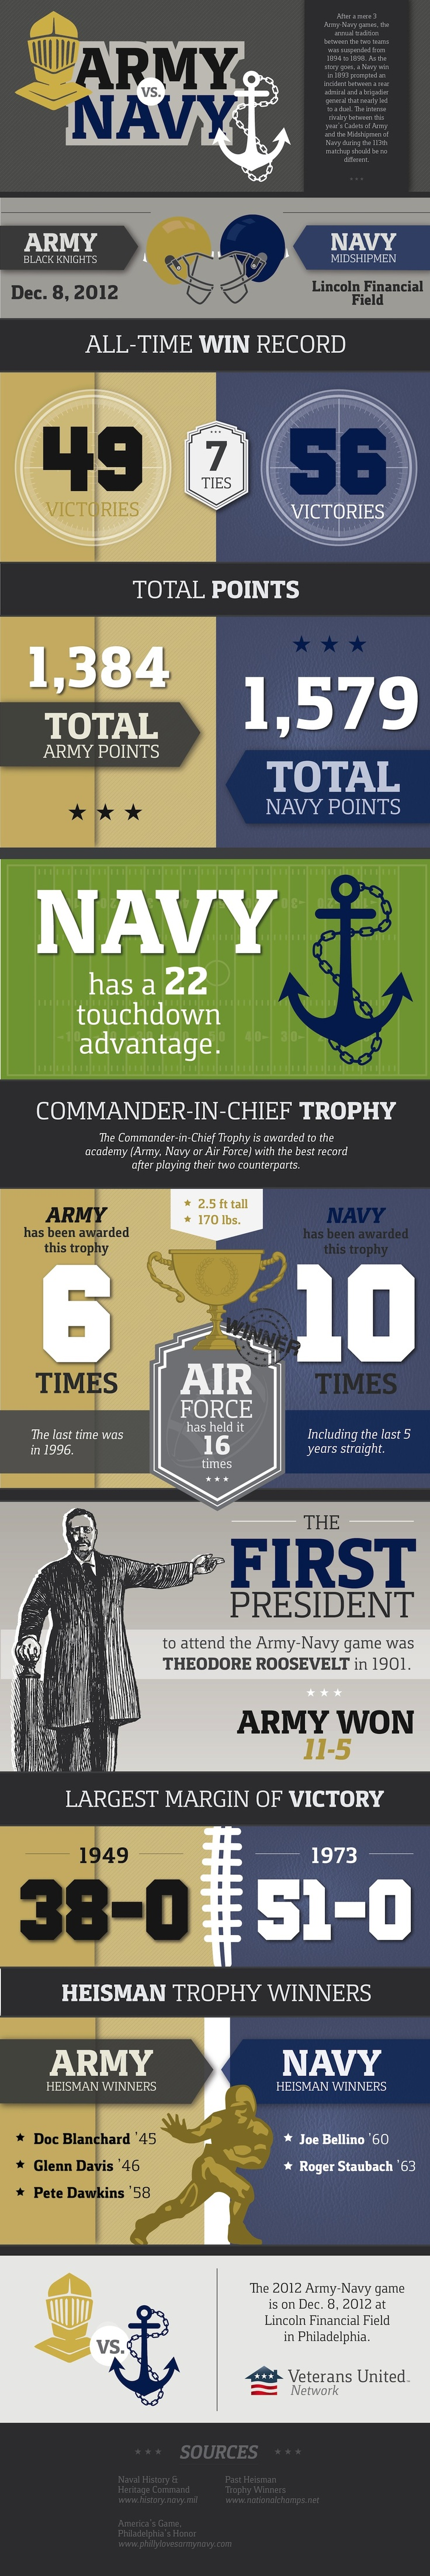 The 2012 Army Navy Game is coming up December 8th! Who are you rooting for? GO NAVY, BEAT ARMY